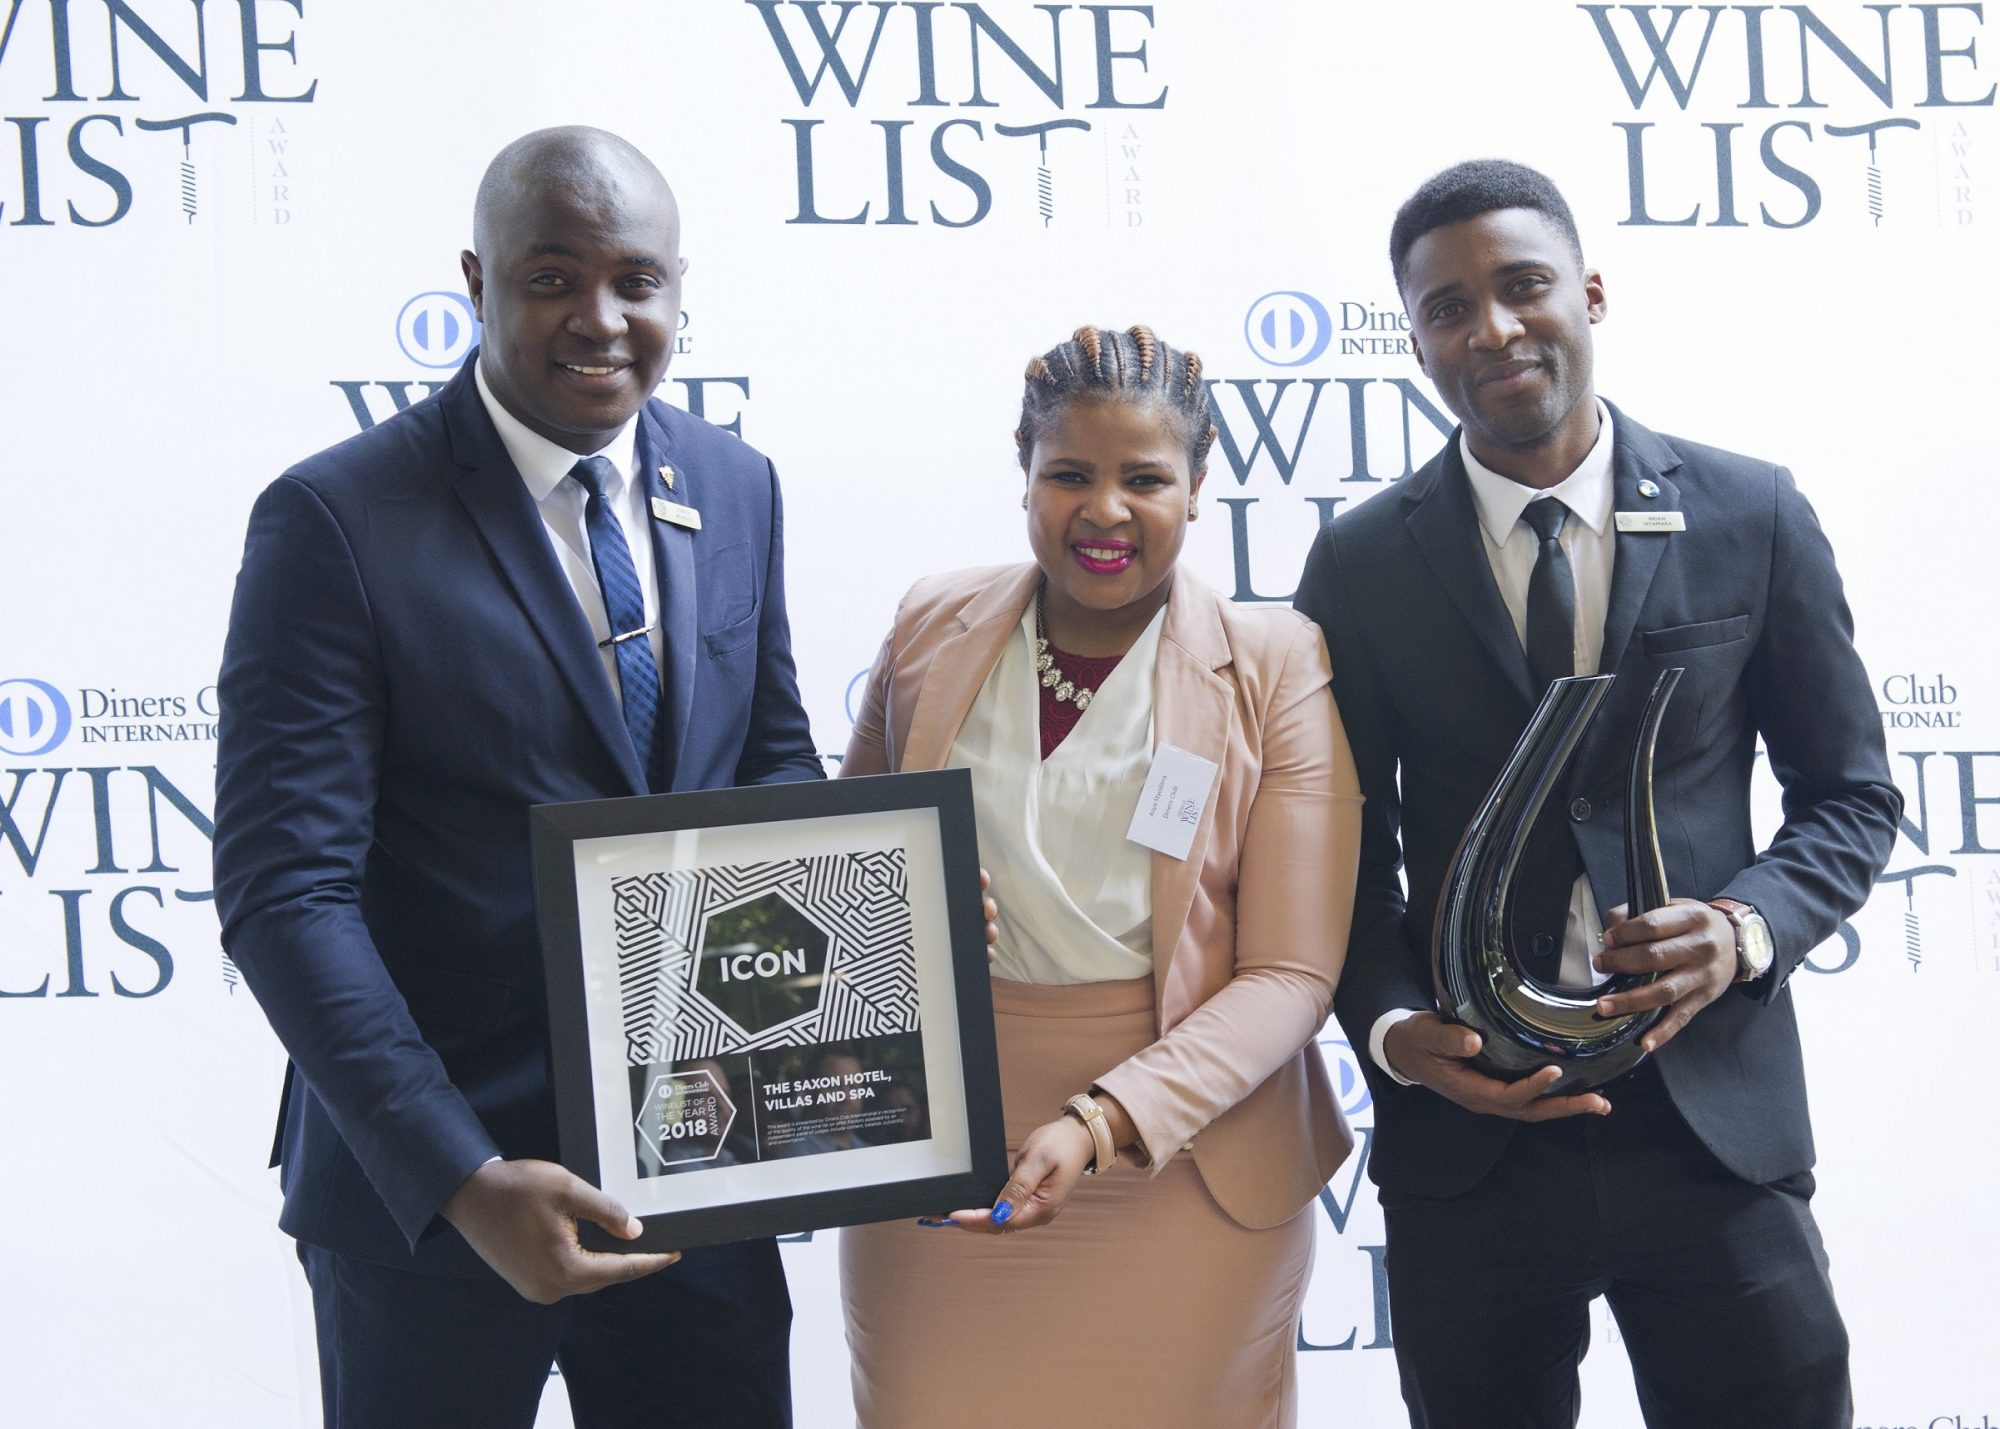 {NEWS}{MEDIA RELEASE} The 2018 Diners Club Winelist Awards